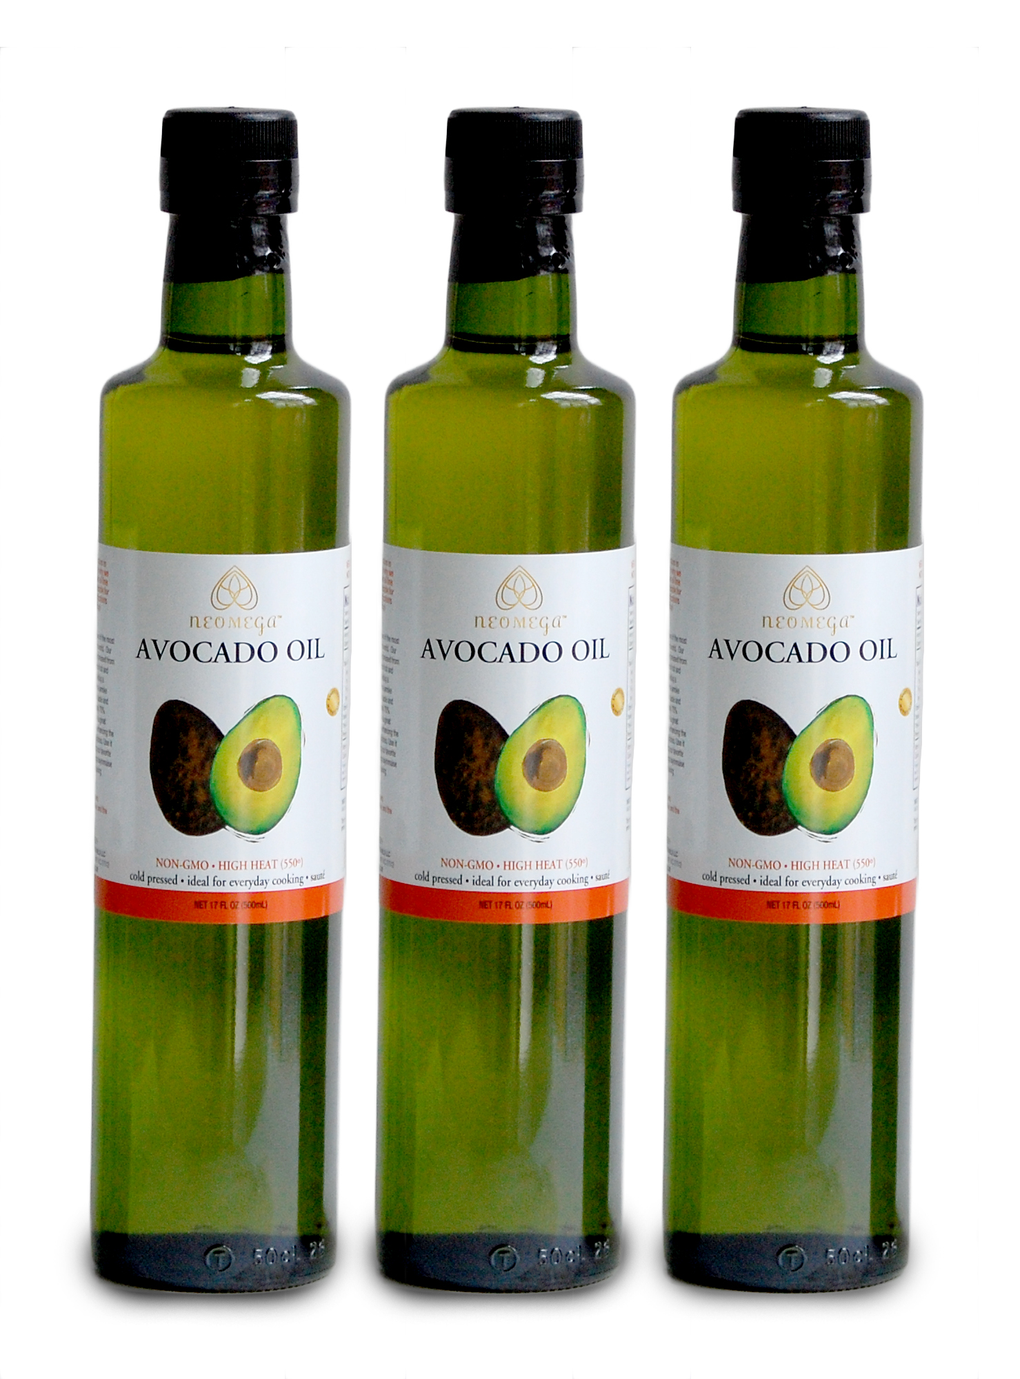 Featured product: Rosemary Infused Avocado Oil